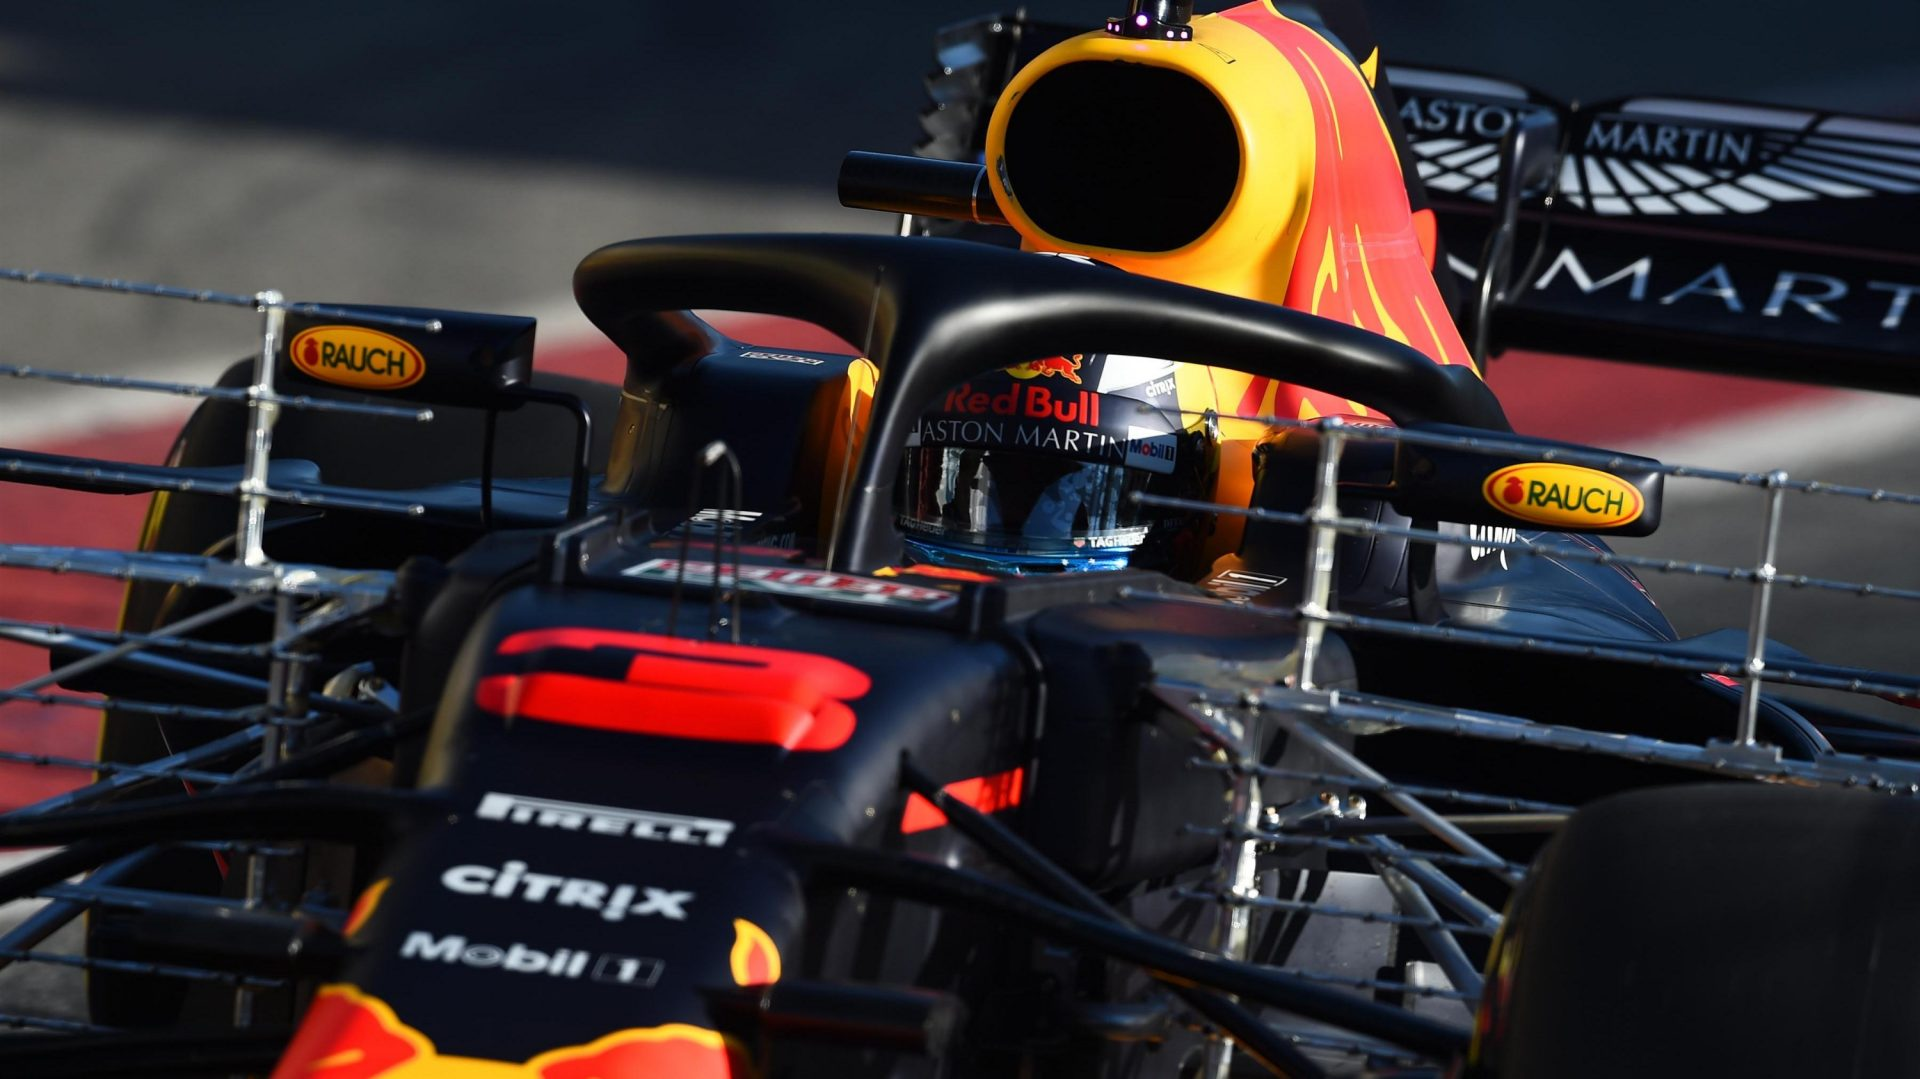 https://www.formula1.com/content/fom-website/en/latest/features/2018/3/gallery--day-4-of-the-second-barcelona-test/_jcr_content/featureContent/manual_gallery/image7.img.1920.medium.jpg/1520584735197.jpg